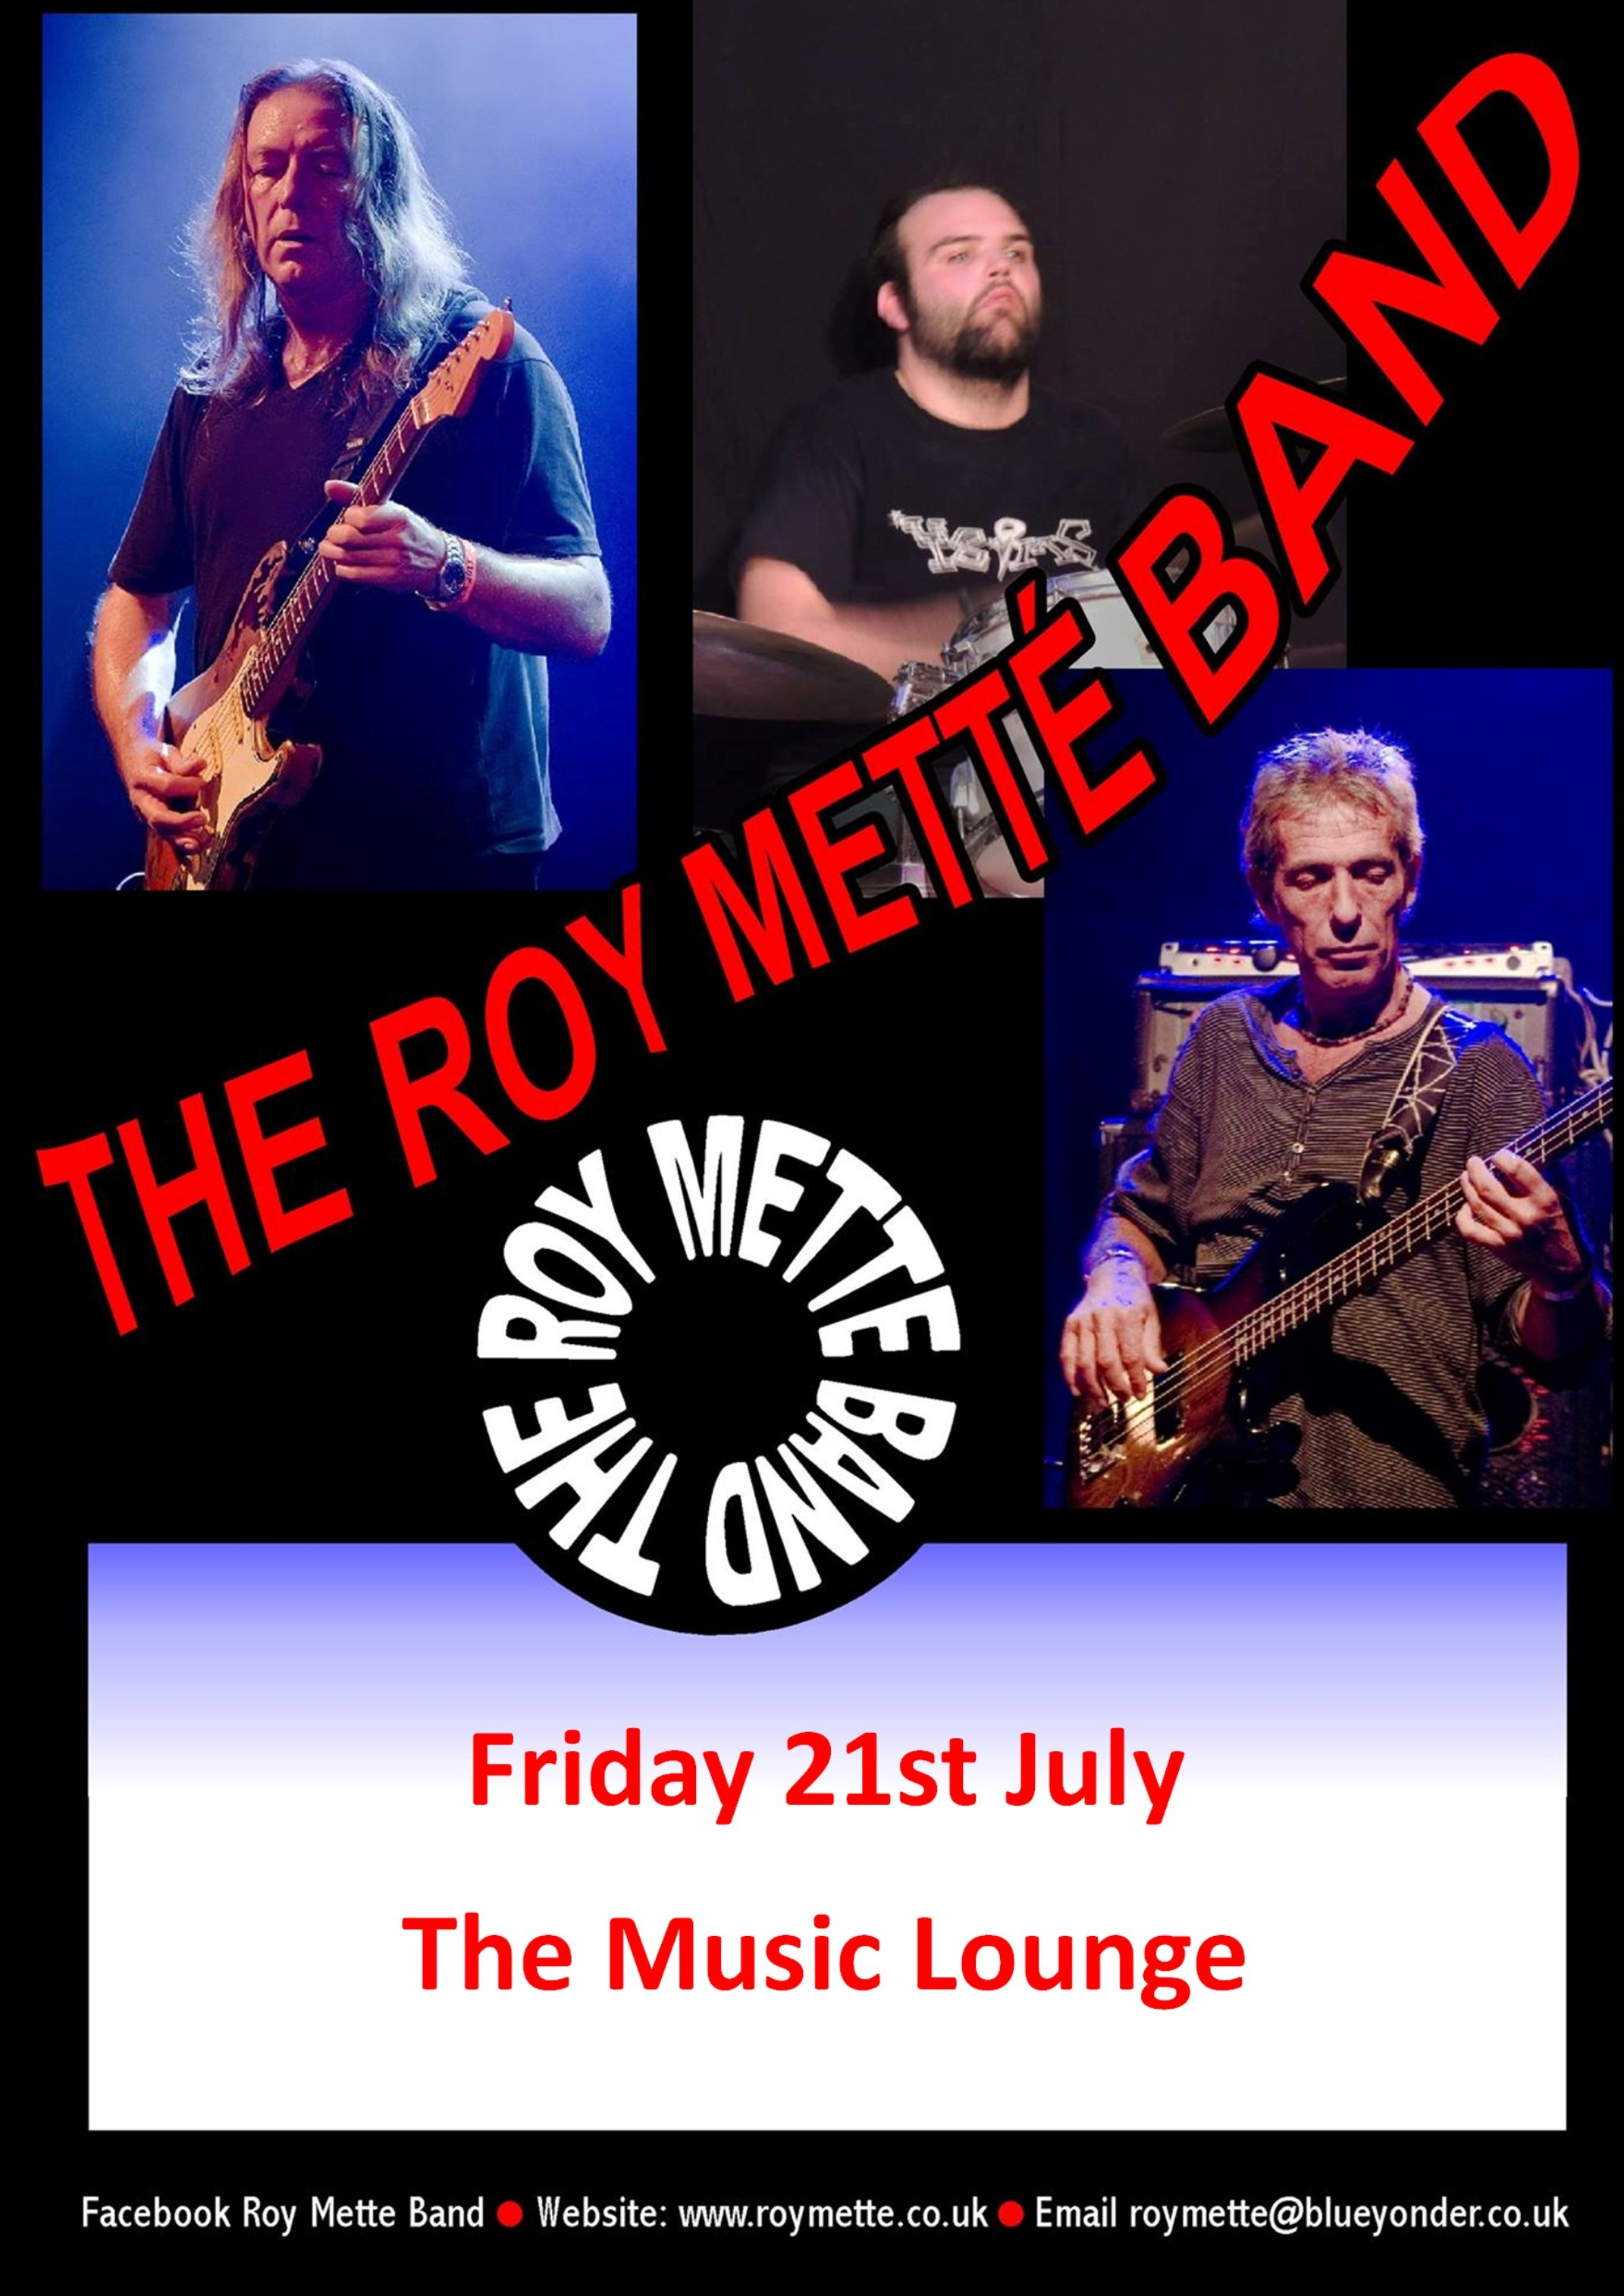 The Roy Mette Band